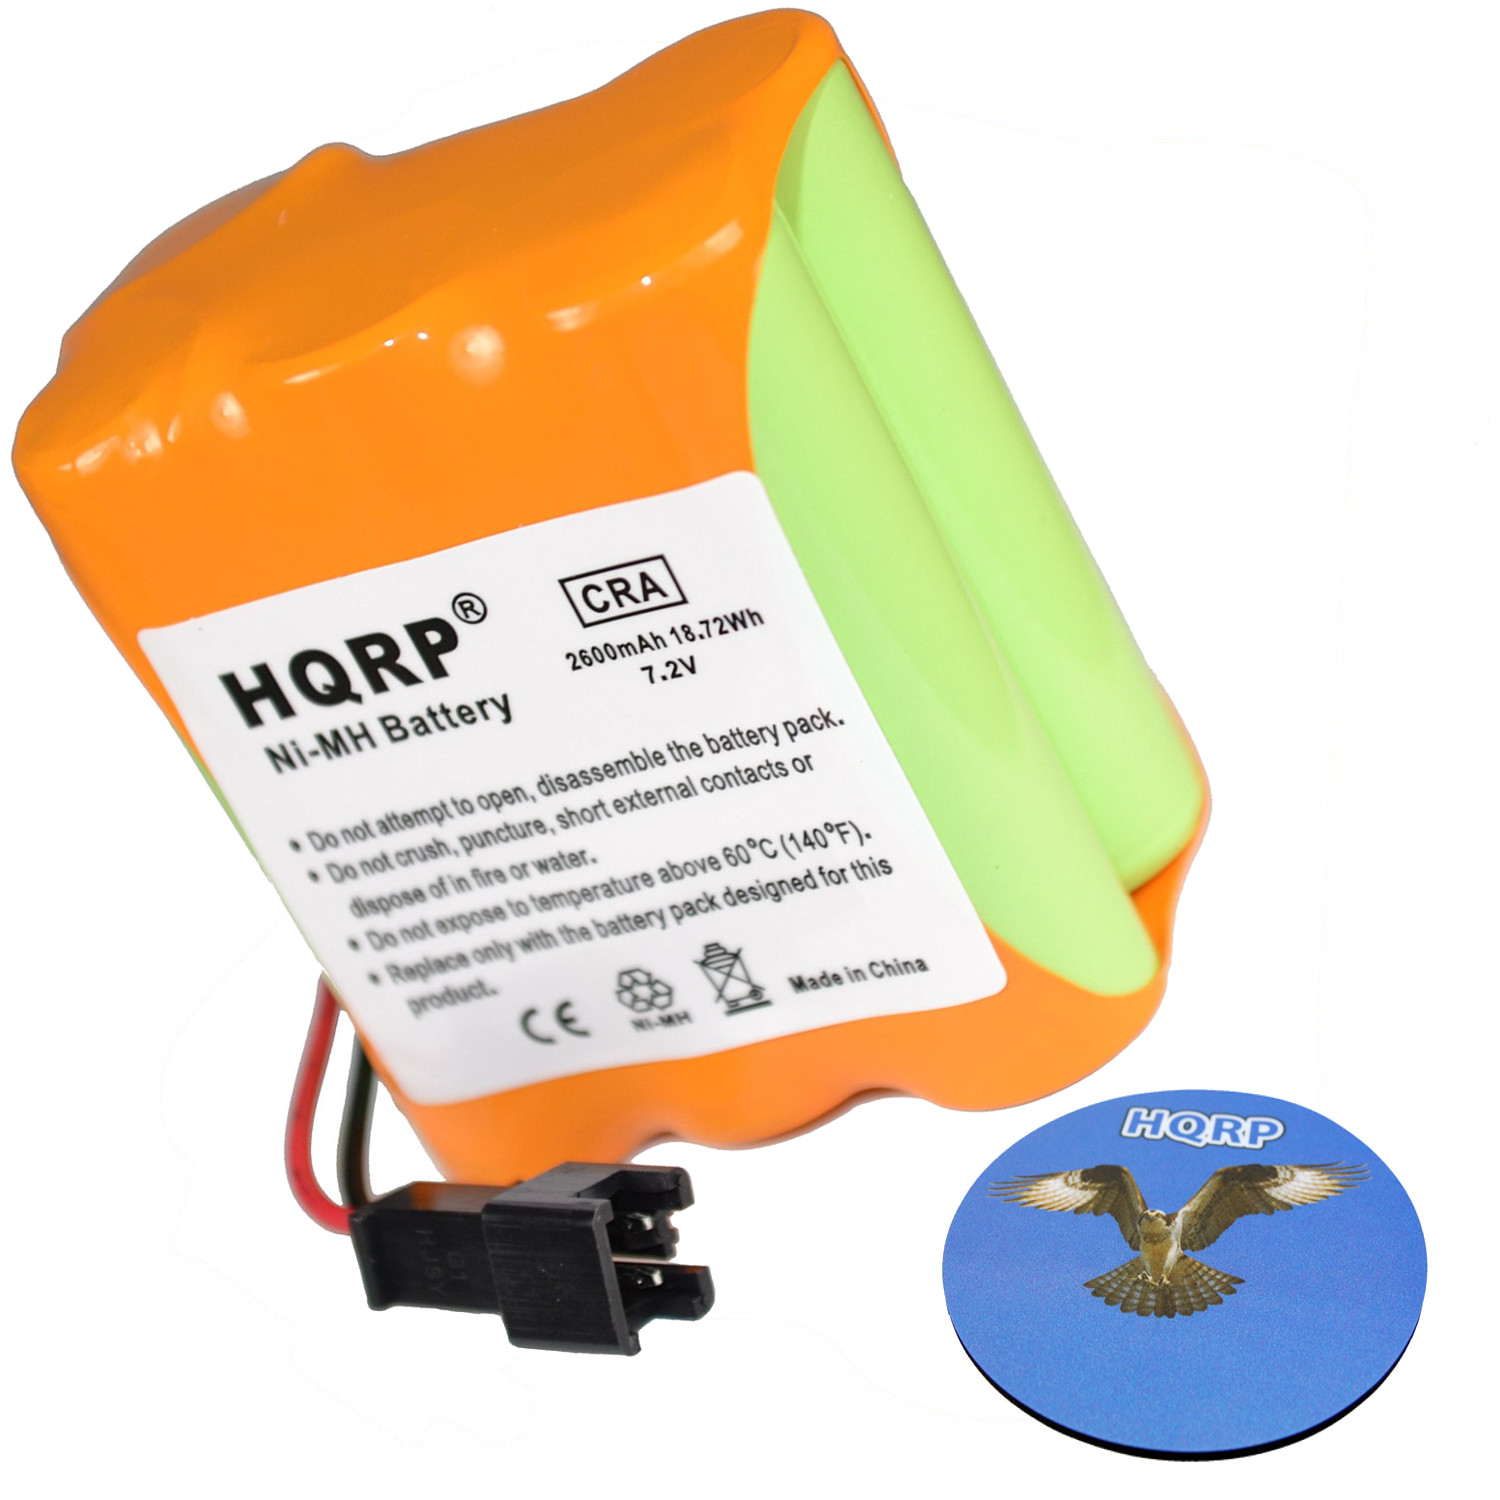 HQRP SUPER Extended 2600mAh Battery Pack compatible with Tivoli Audio iPAL Portable Audio Laboratory AM   FM Radio +... by HQRP